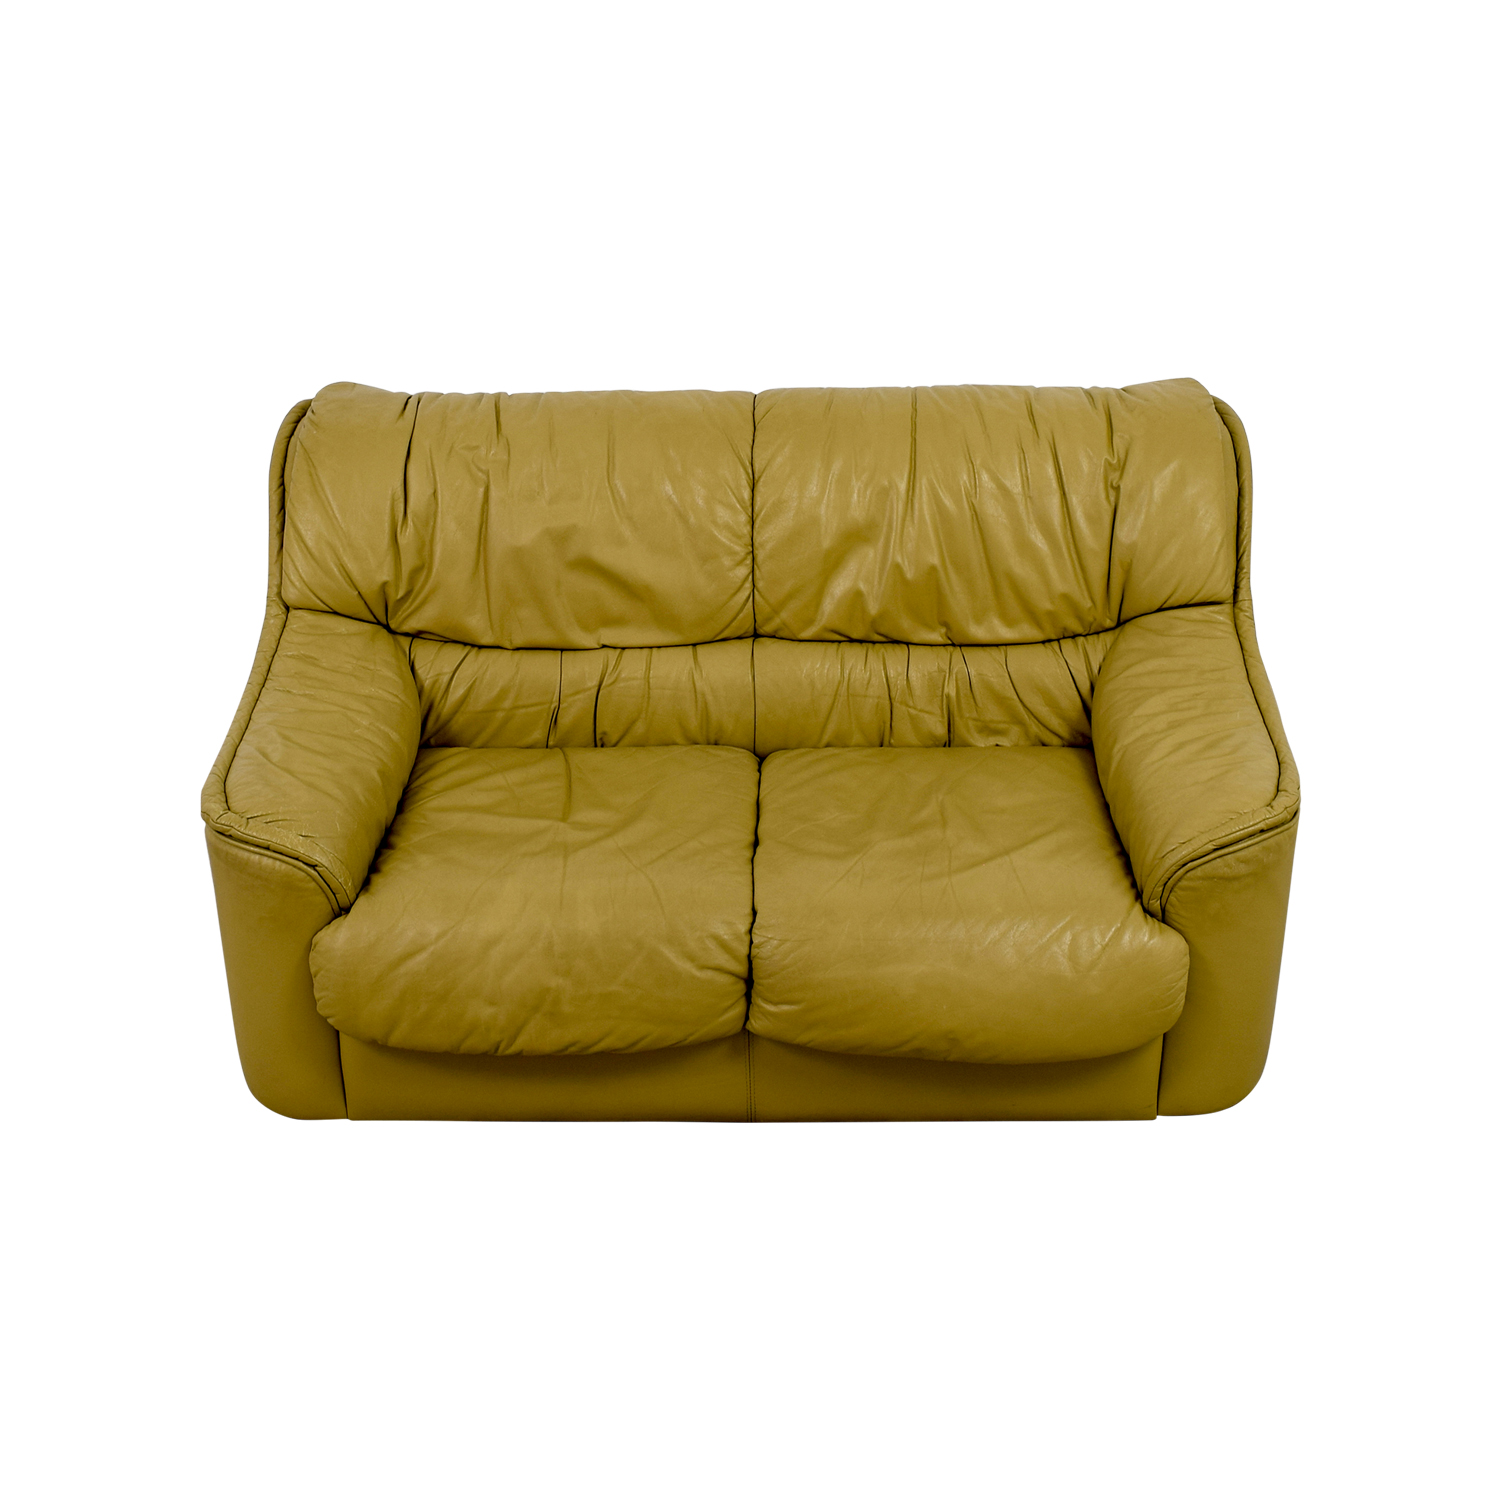 Tan Two-Cushion Love Seat on sale